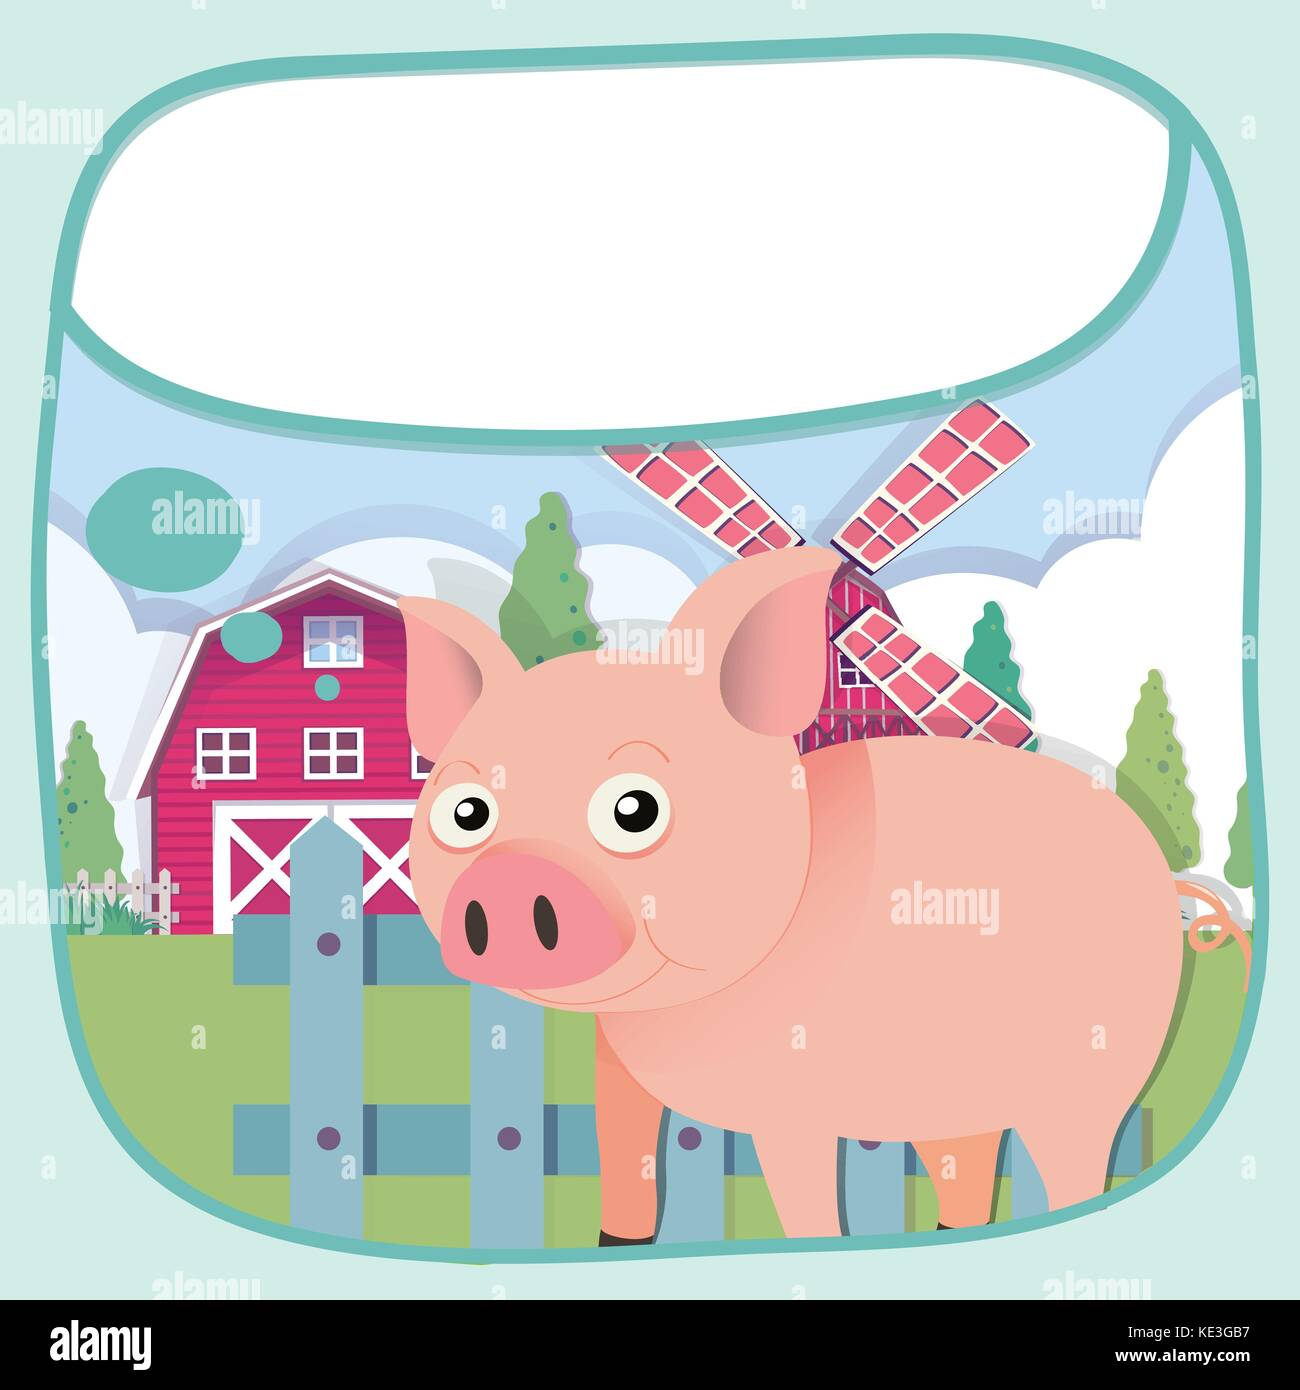 Border Design With Pig And Barn Illustration